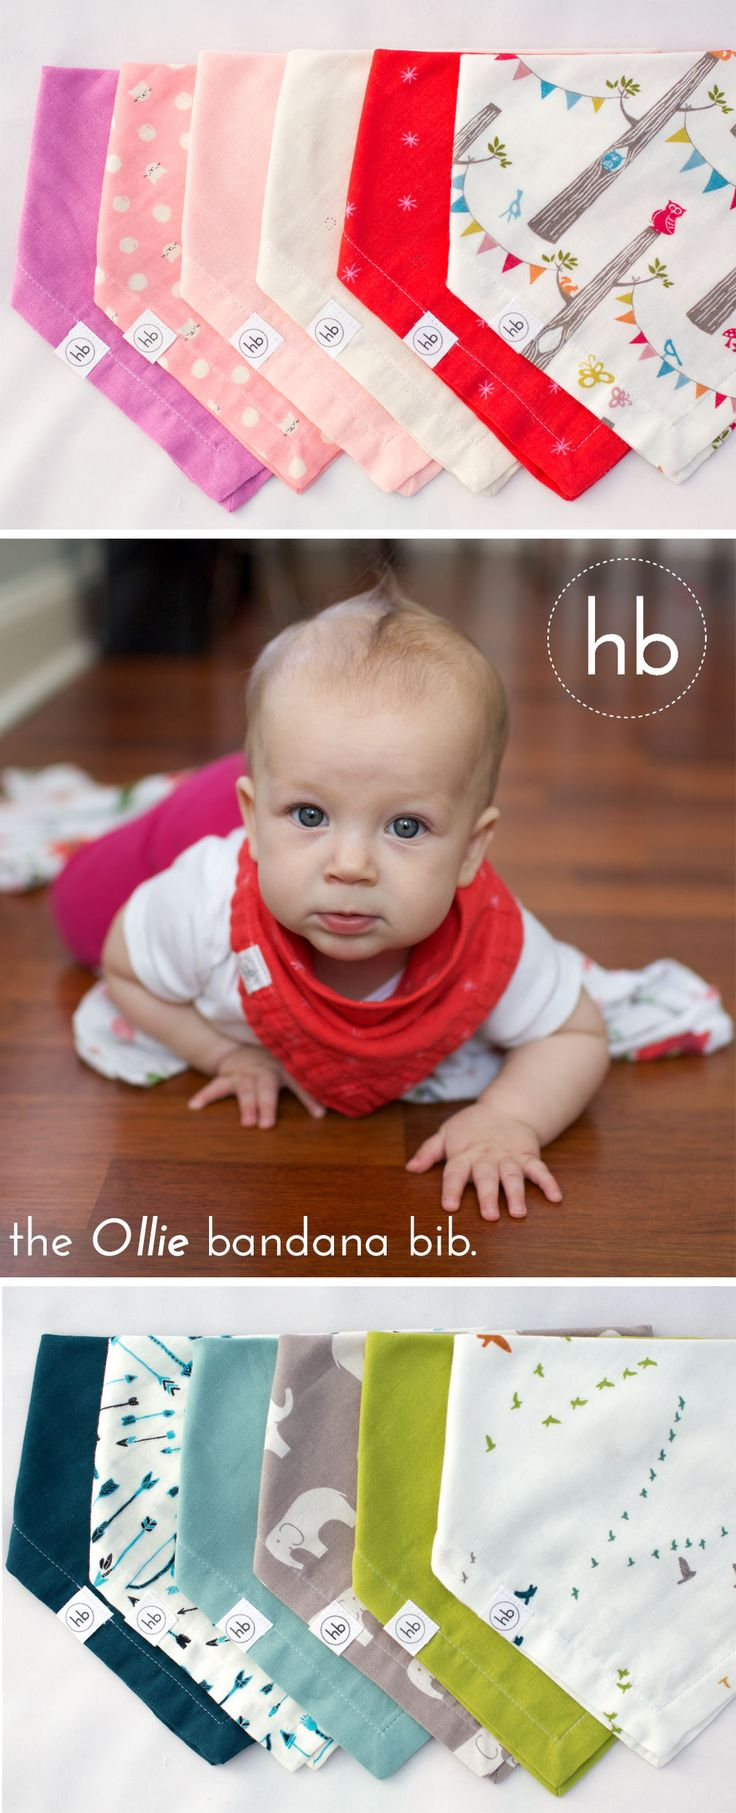 """Ollie Bandana Drool Bib   Hemming Birds Boutique. Adorable, functional, and stylish for your modern baby. Handcrafted from 100% premium cotton double gauze (ORGANIC available!) Soft and gentle against skin and adsorbent - perfect to keep drool and dribble out of adorable neck folds. Fits 3 months and up with 2 snap settings. $33 for pair. A new essential for baby registries! (Gift wrapping available) Machine Wash and Dry. Made in USA. Try out the """"obsession"""" yourself!"""